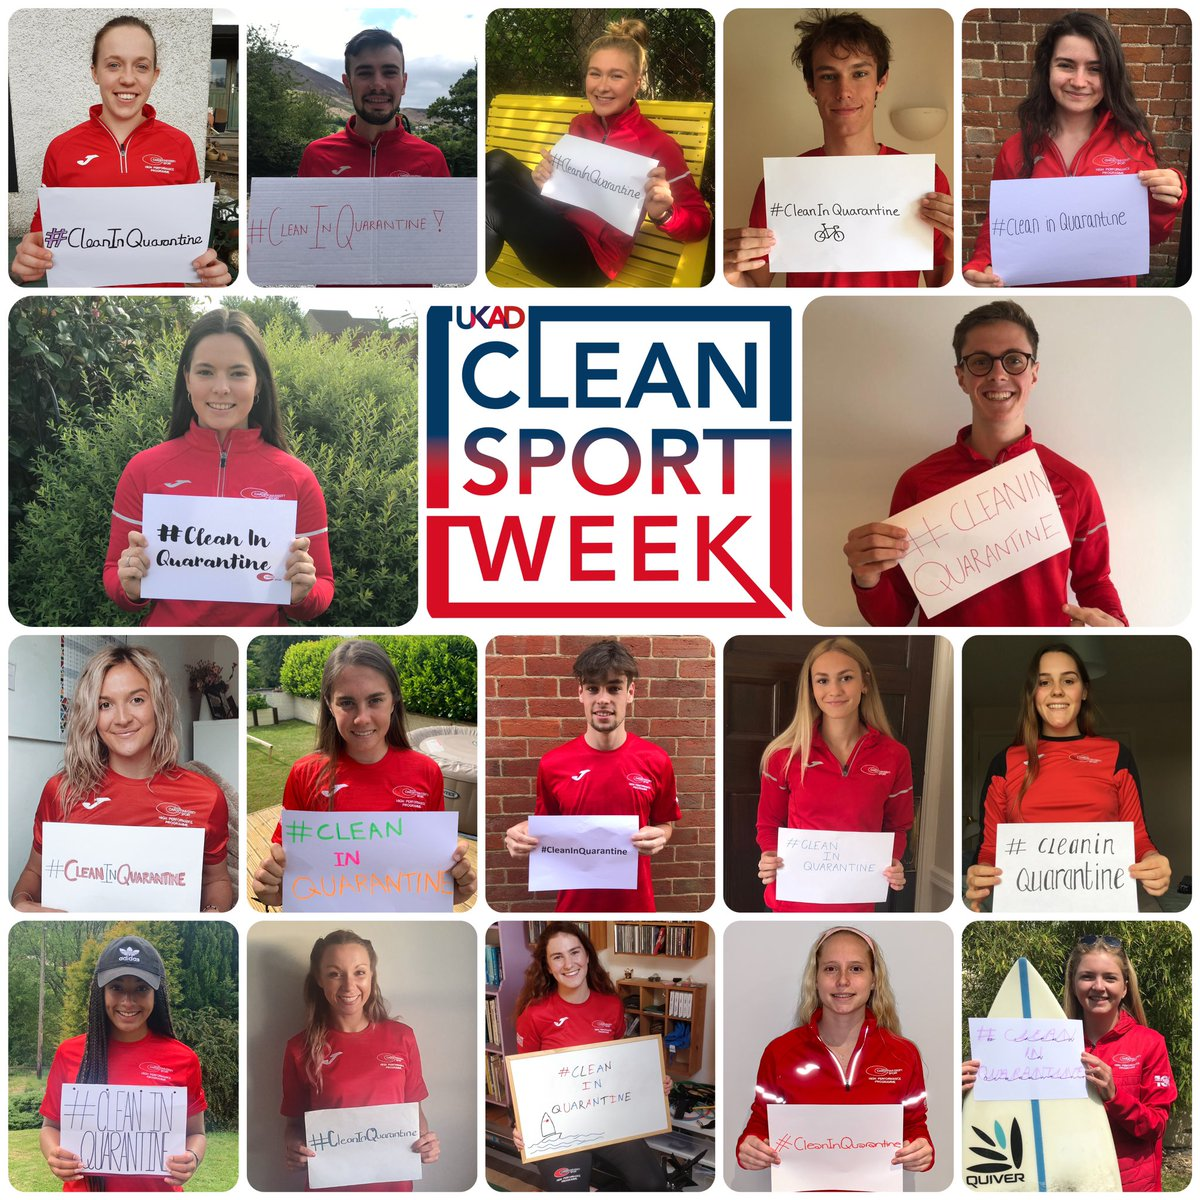 It's @ukantidoping's #CleanSportWeek!  We're proud to show our commitment to clean sport and stress the importance of staying #CleanInQuarantine! 💯 https://t.co/e26zDYqNFU